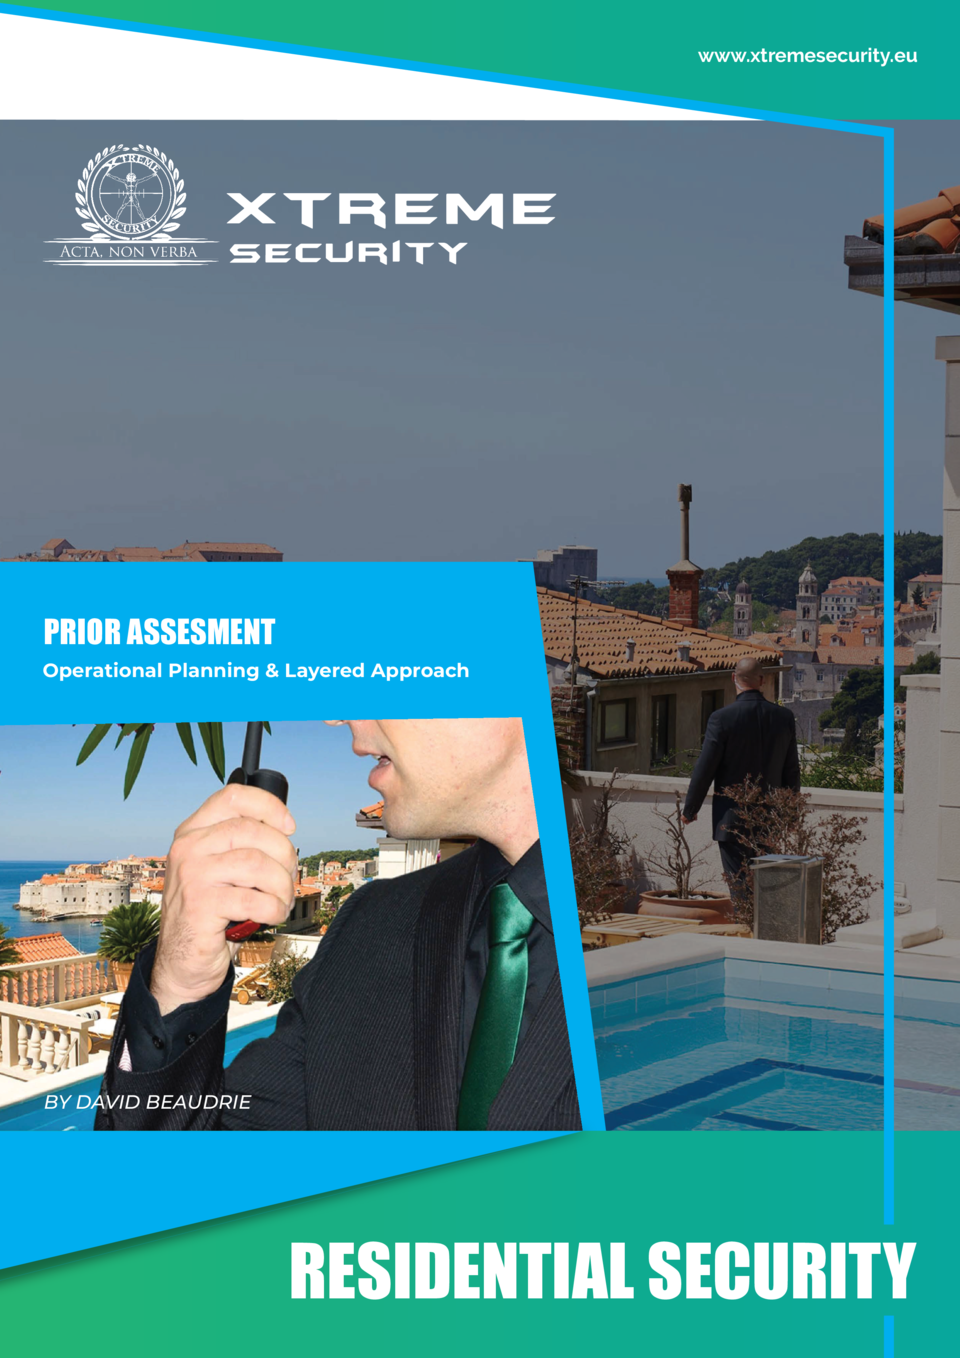 www.xtremesecurity.eu  PRIOR ASSESMENT Operational Planning   Layered Approach  BY DAVID BEAUDRIE  RESIDENTIAL SECURITY